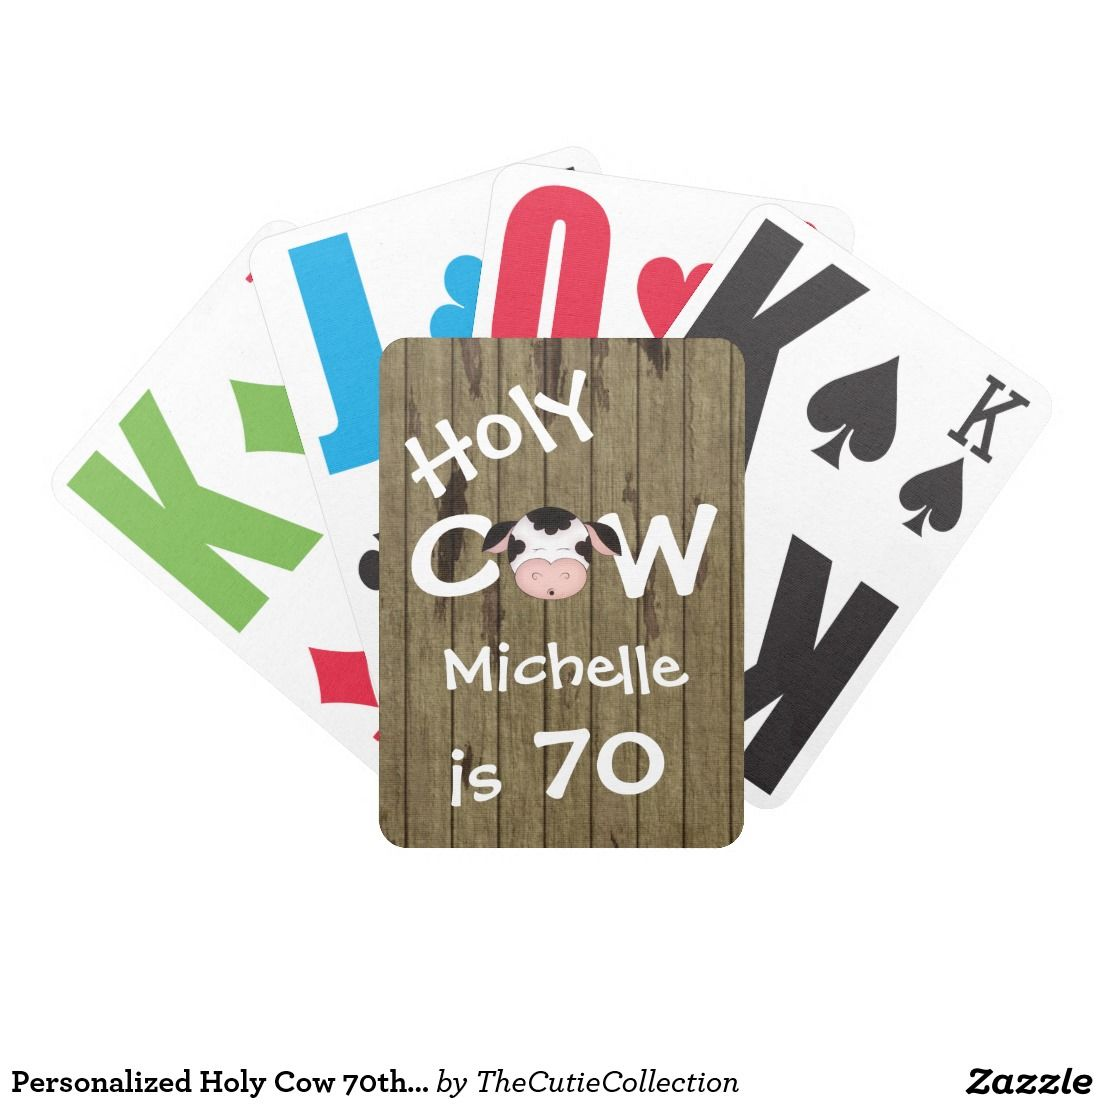 Personalized Holy Cow 70th Birthday Playing Cards